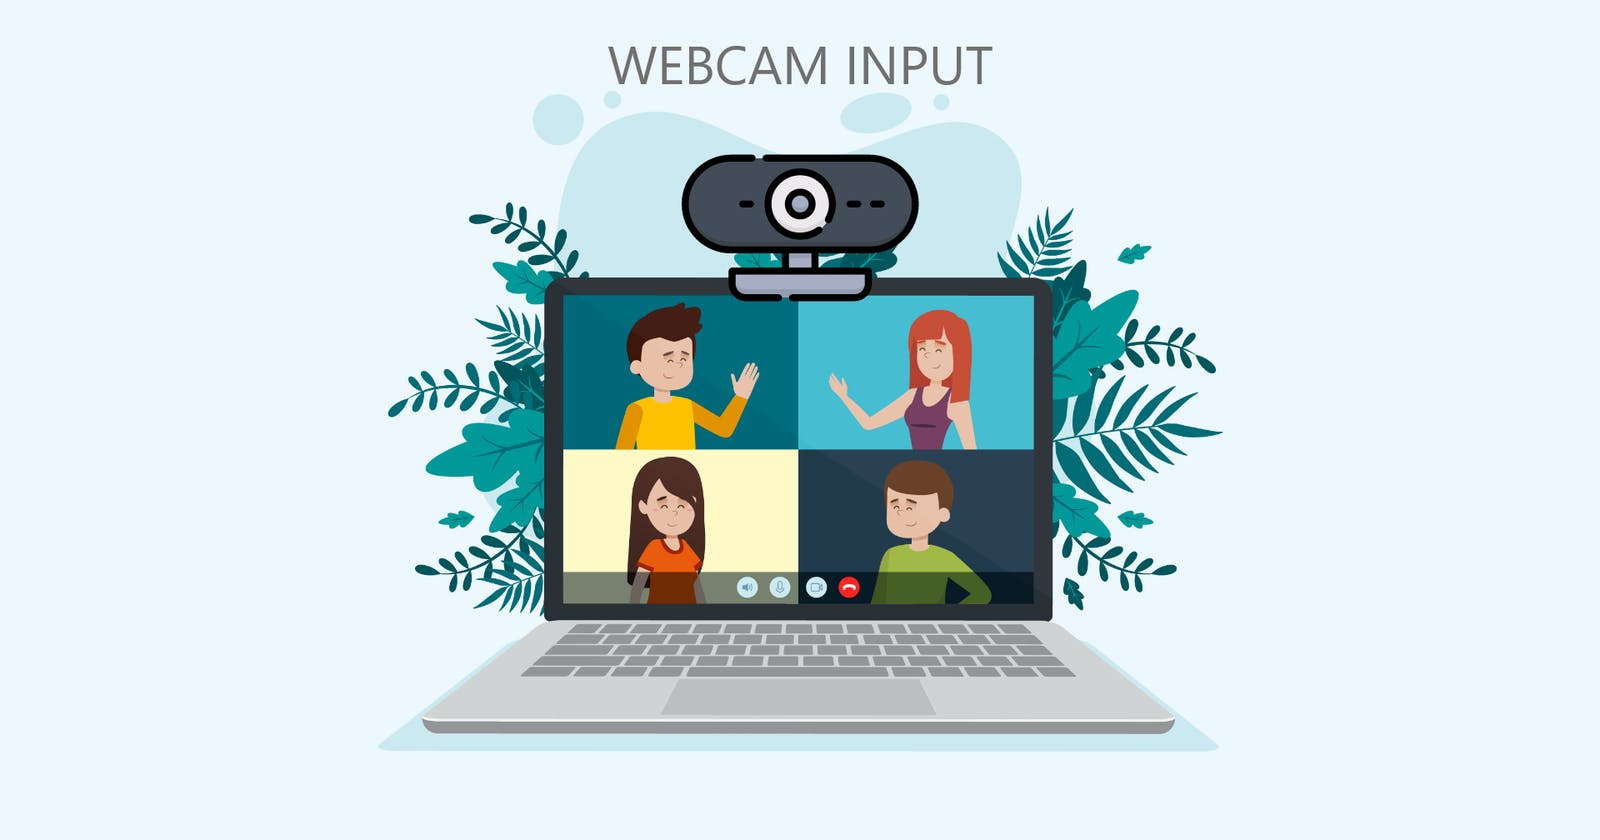 Getting Webcam input in HTML5 page